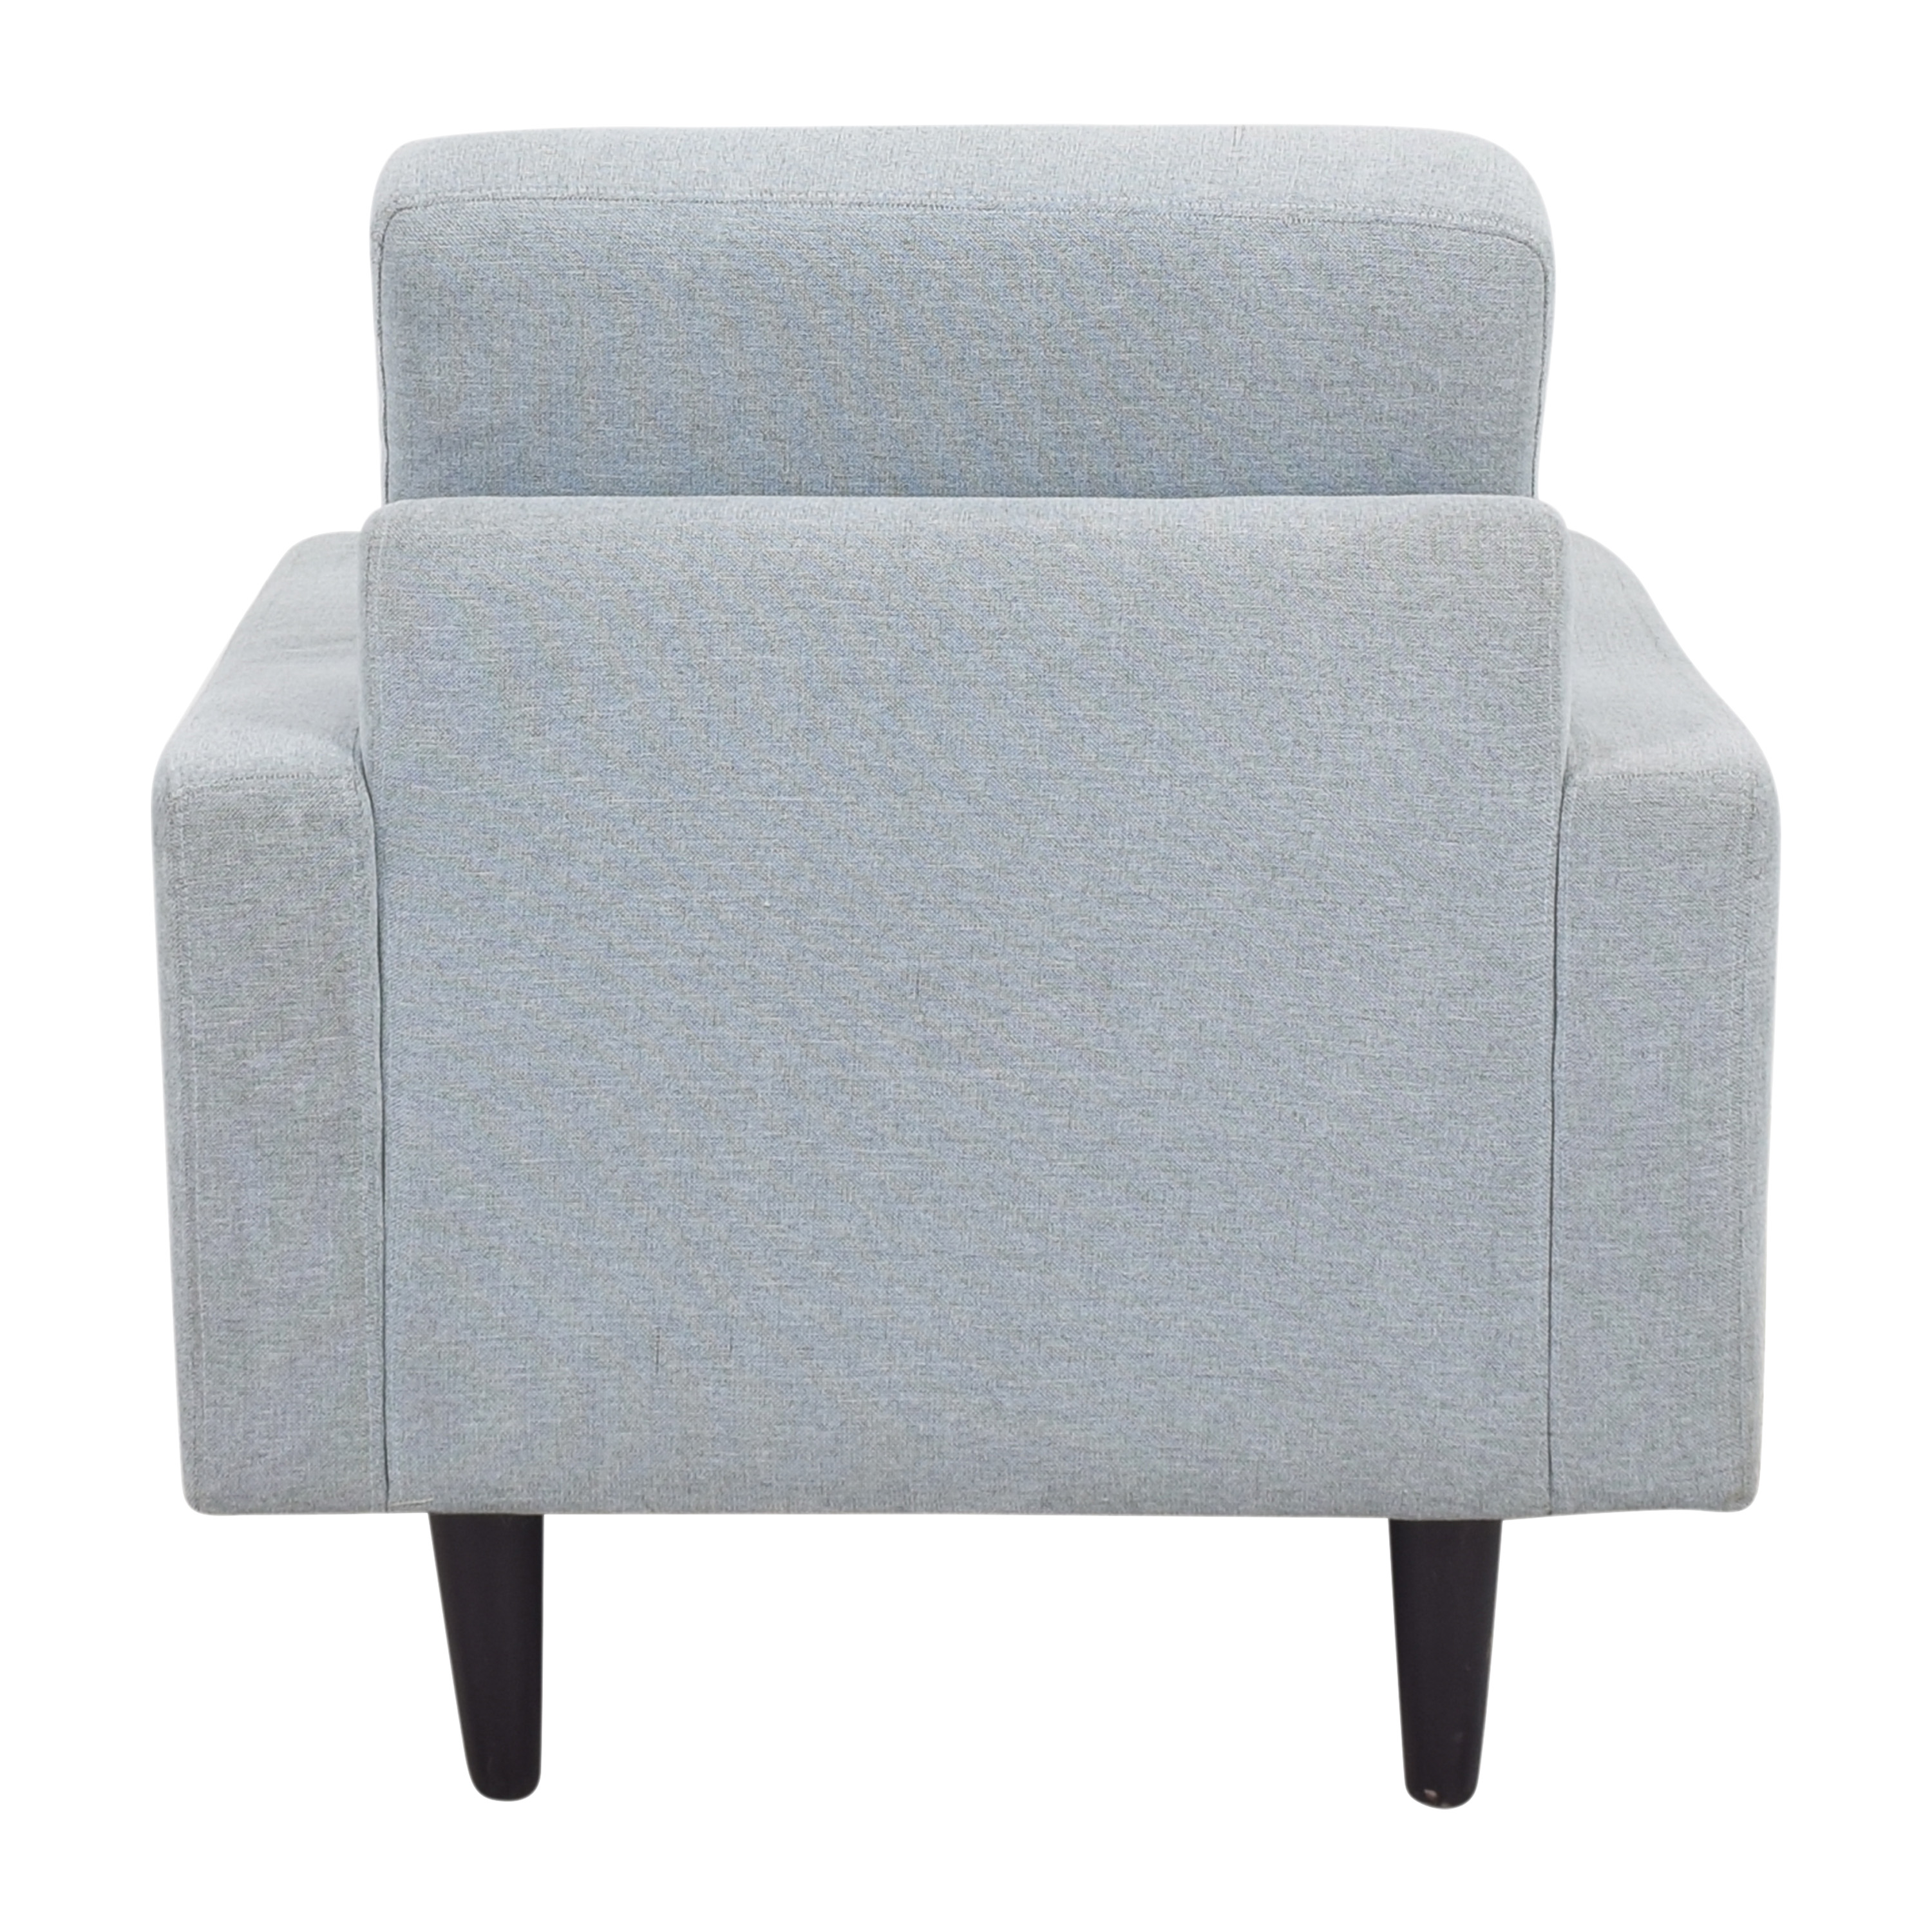 shop Room & Board Tufted Accent Chair Room & Board Accent Chairs